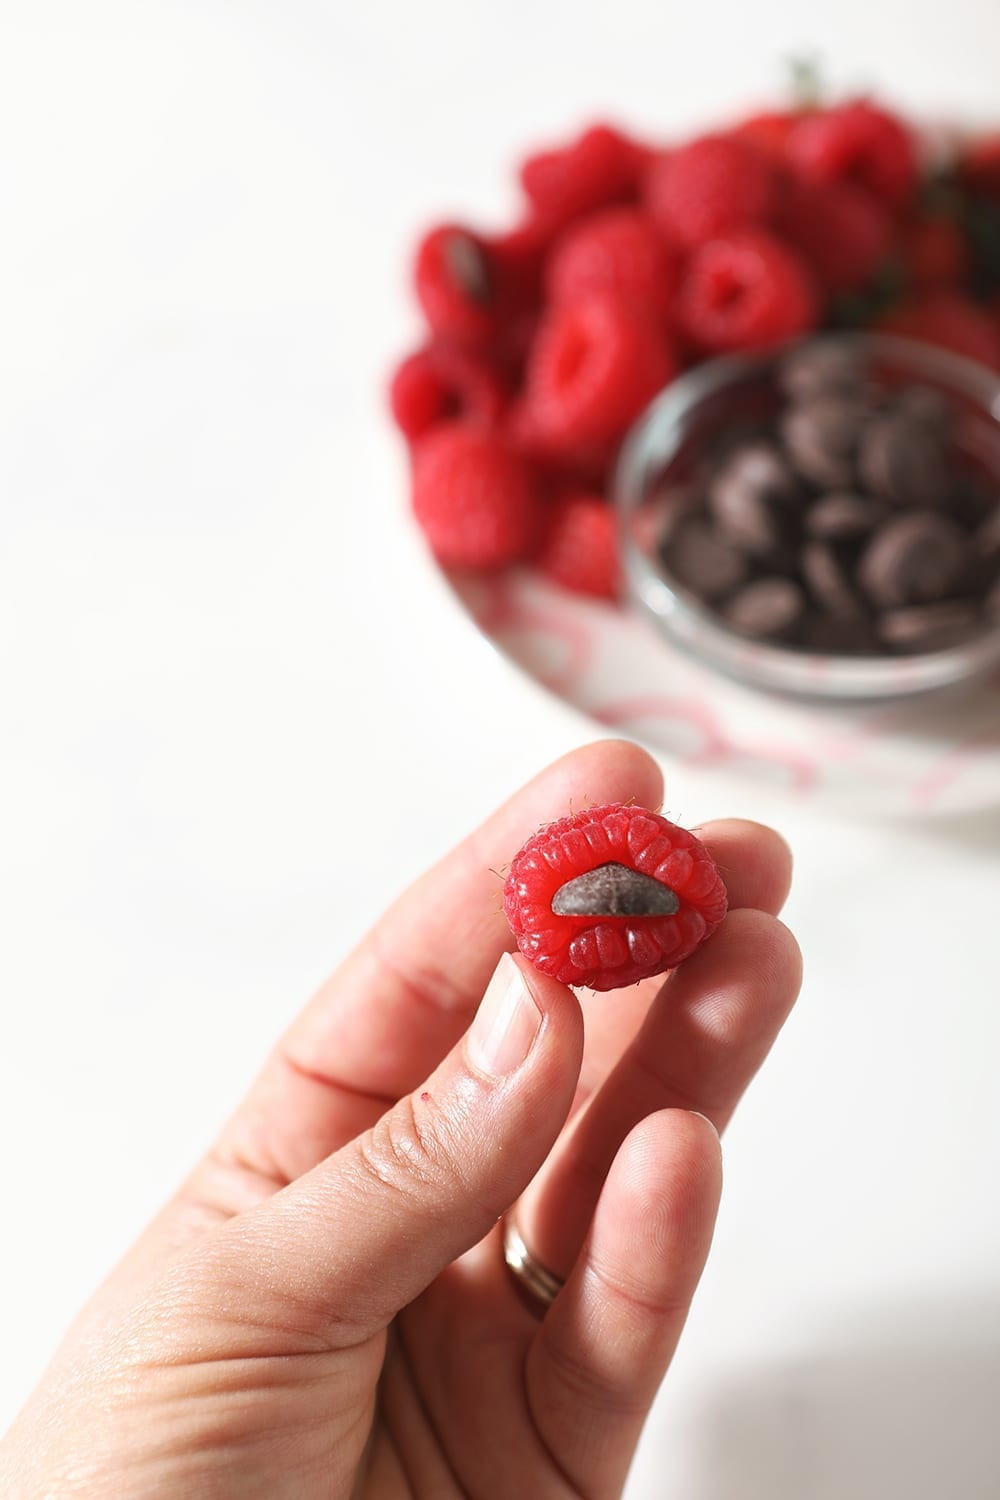 A person holds a raspberry, stuffed with a dark chocolate chip